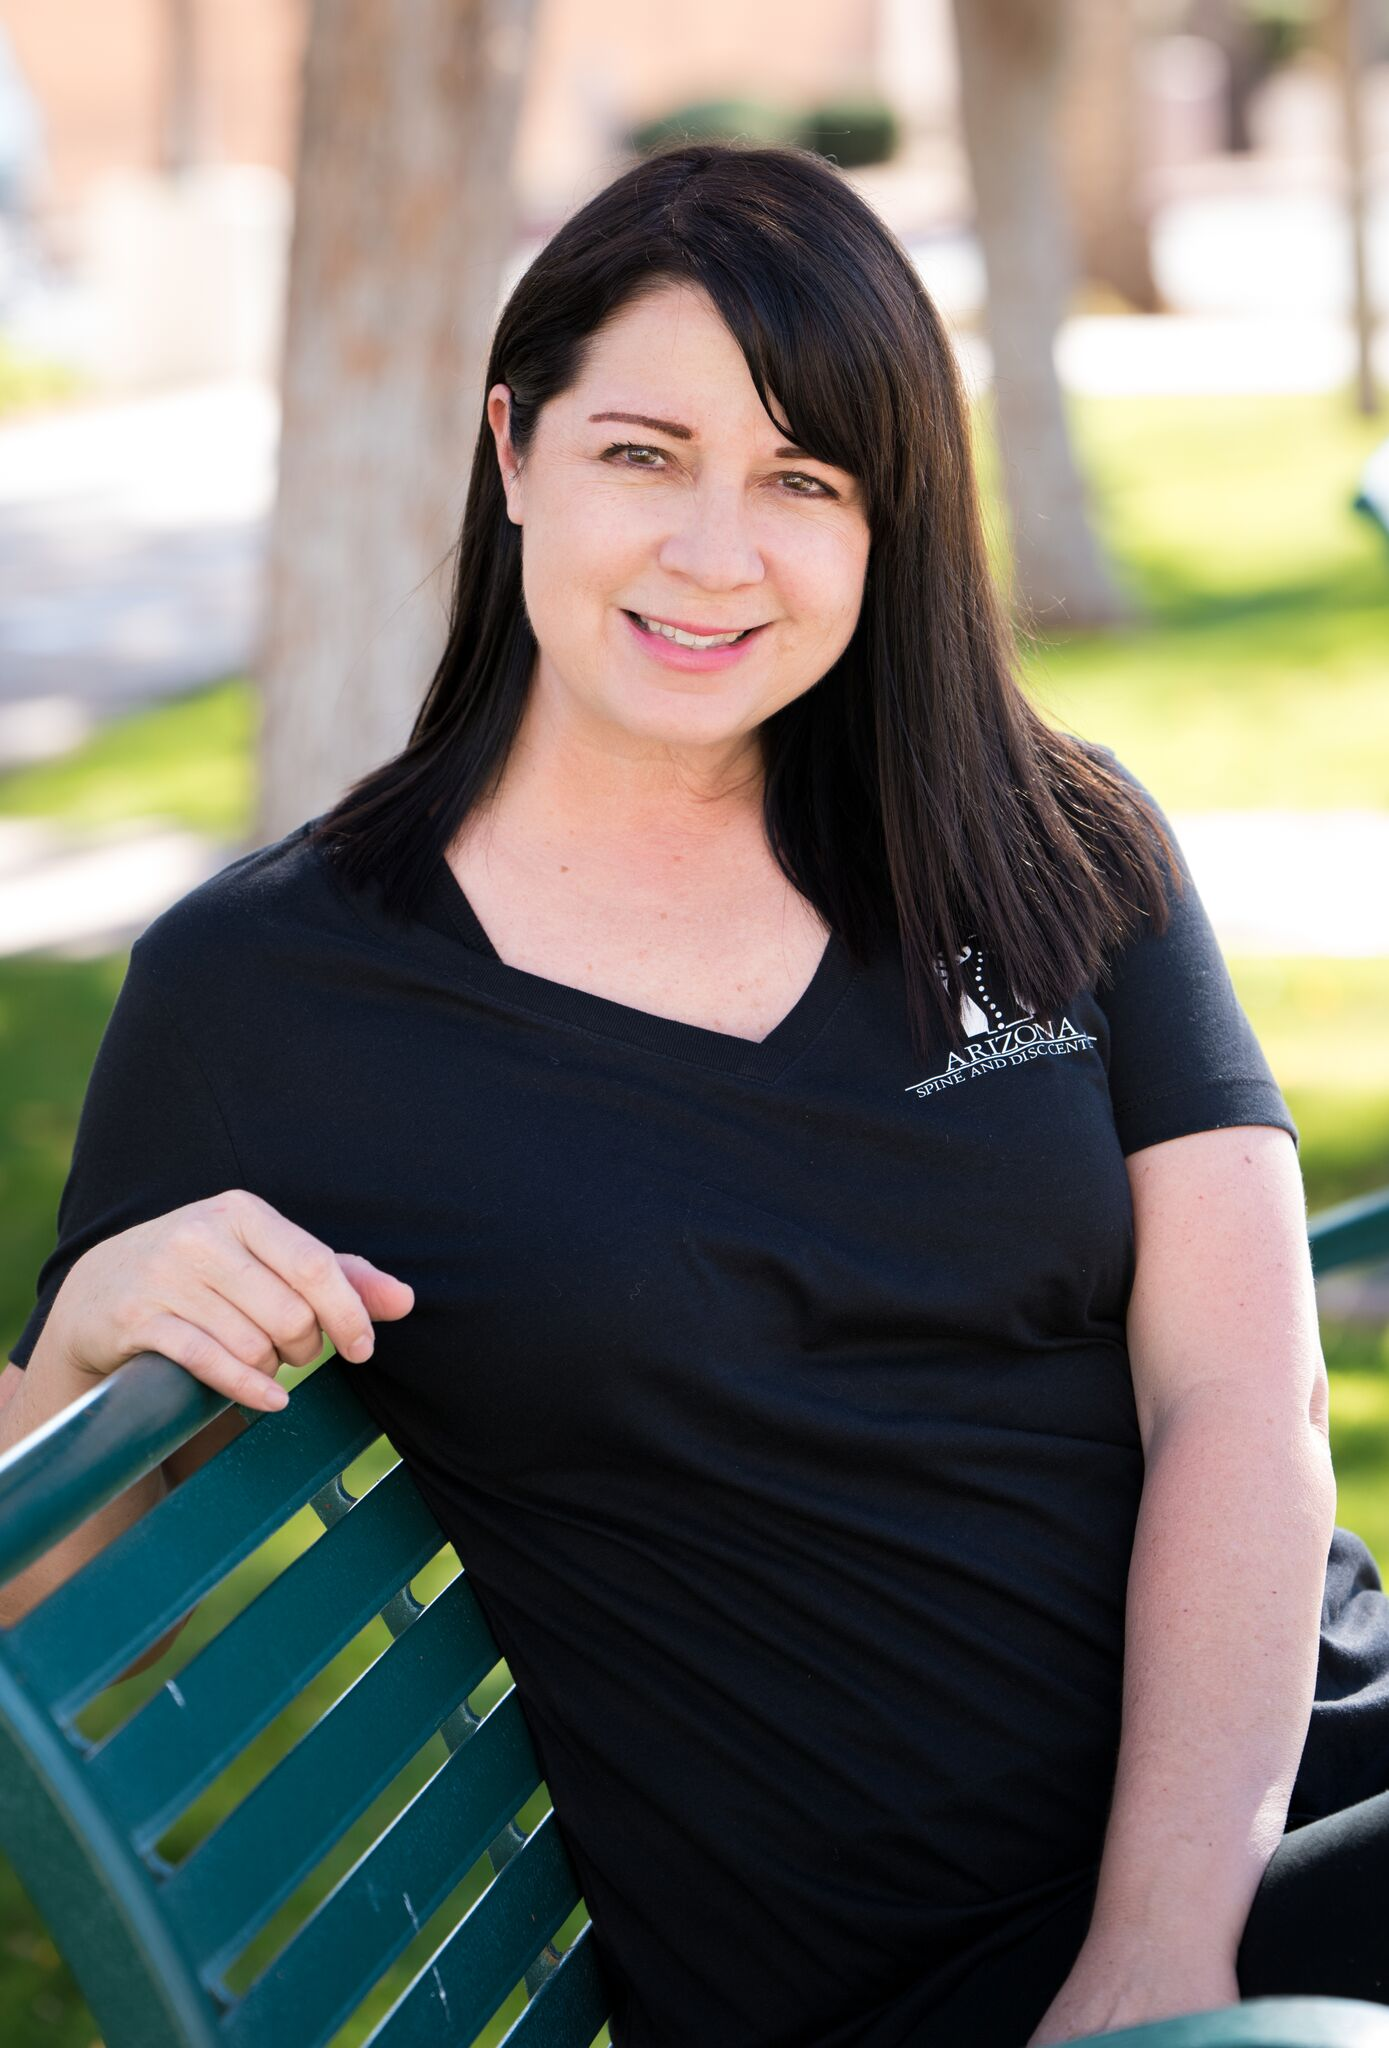 Patricia – Massage Therapist and Chiropractic Assistant